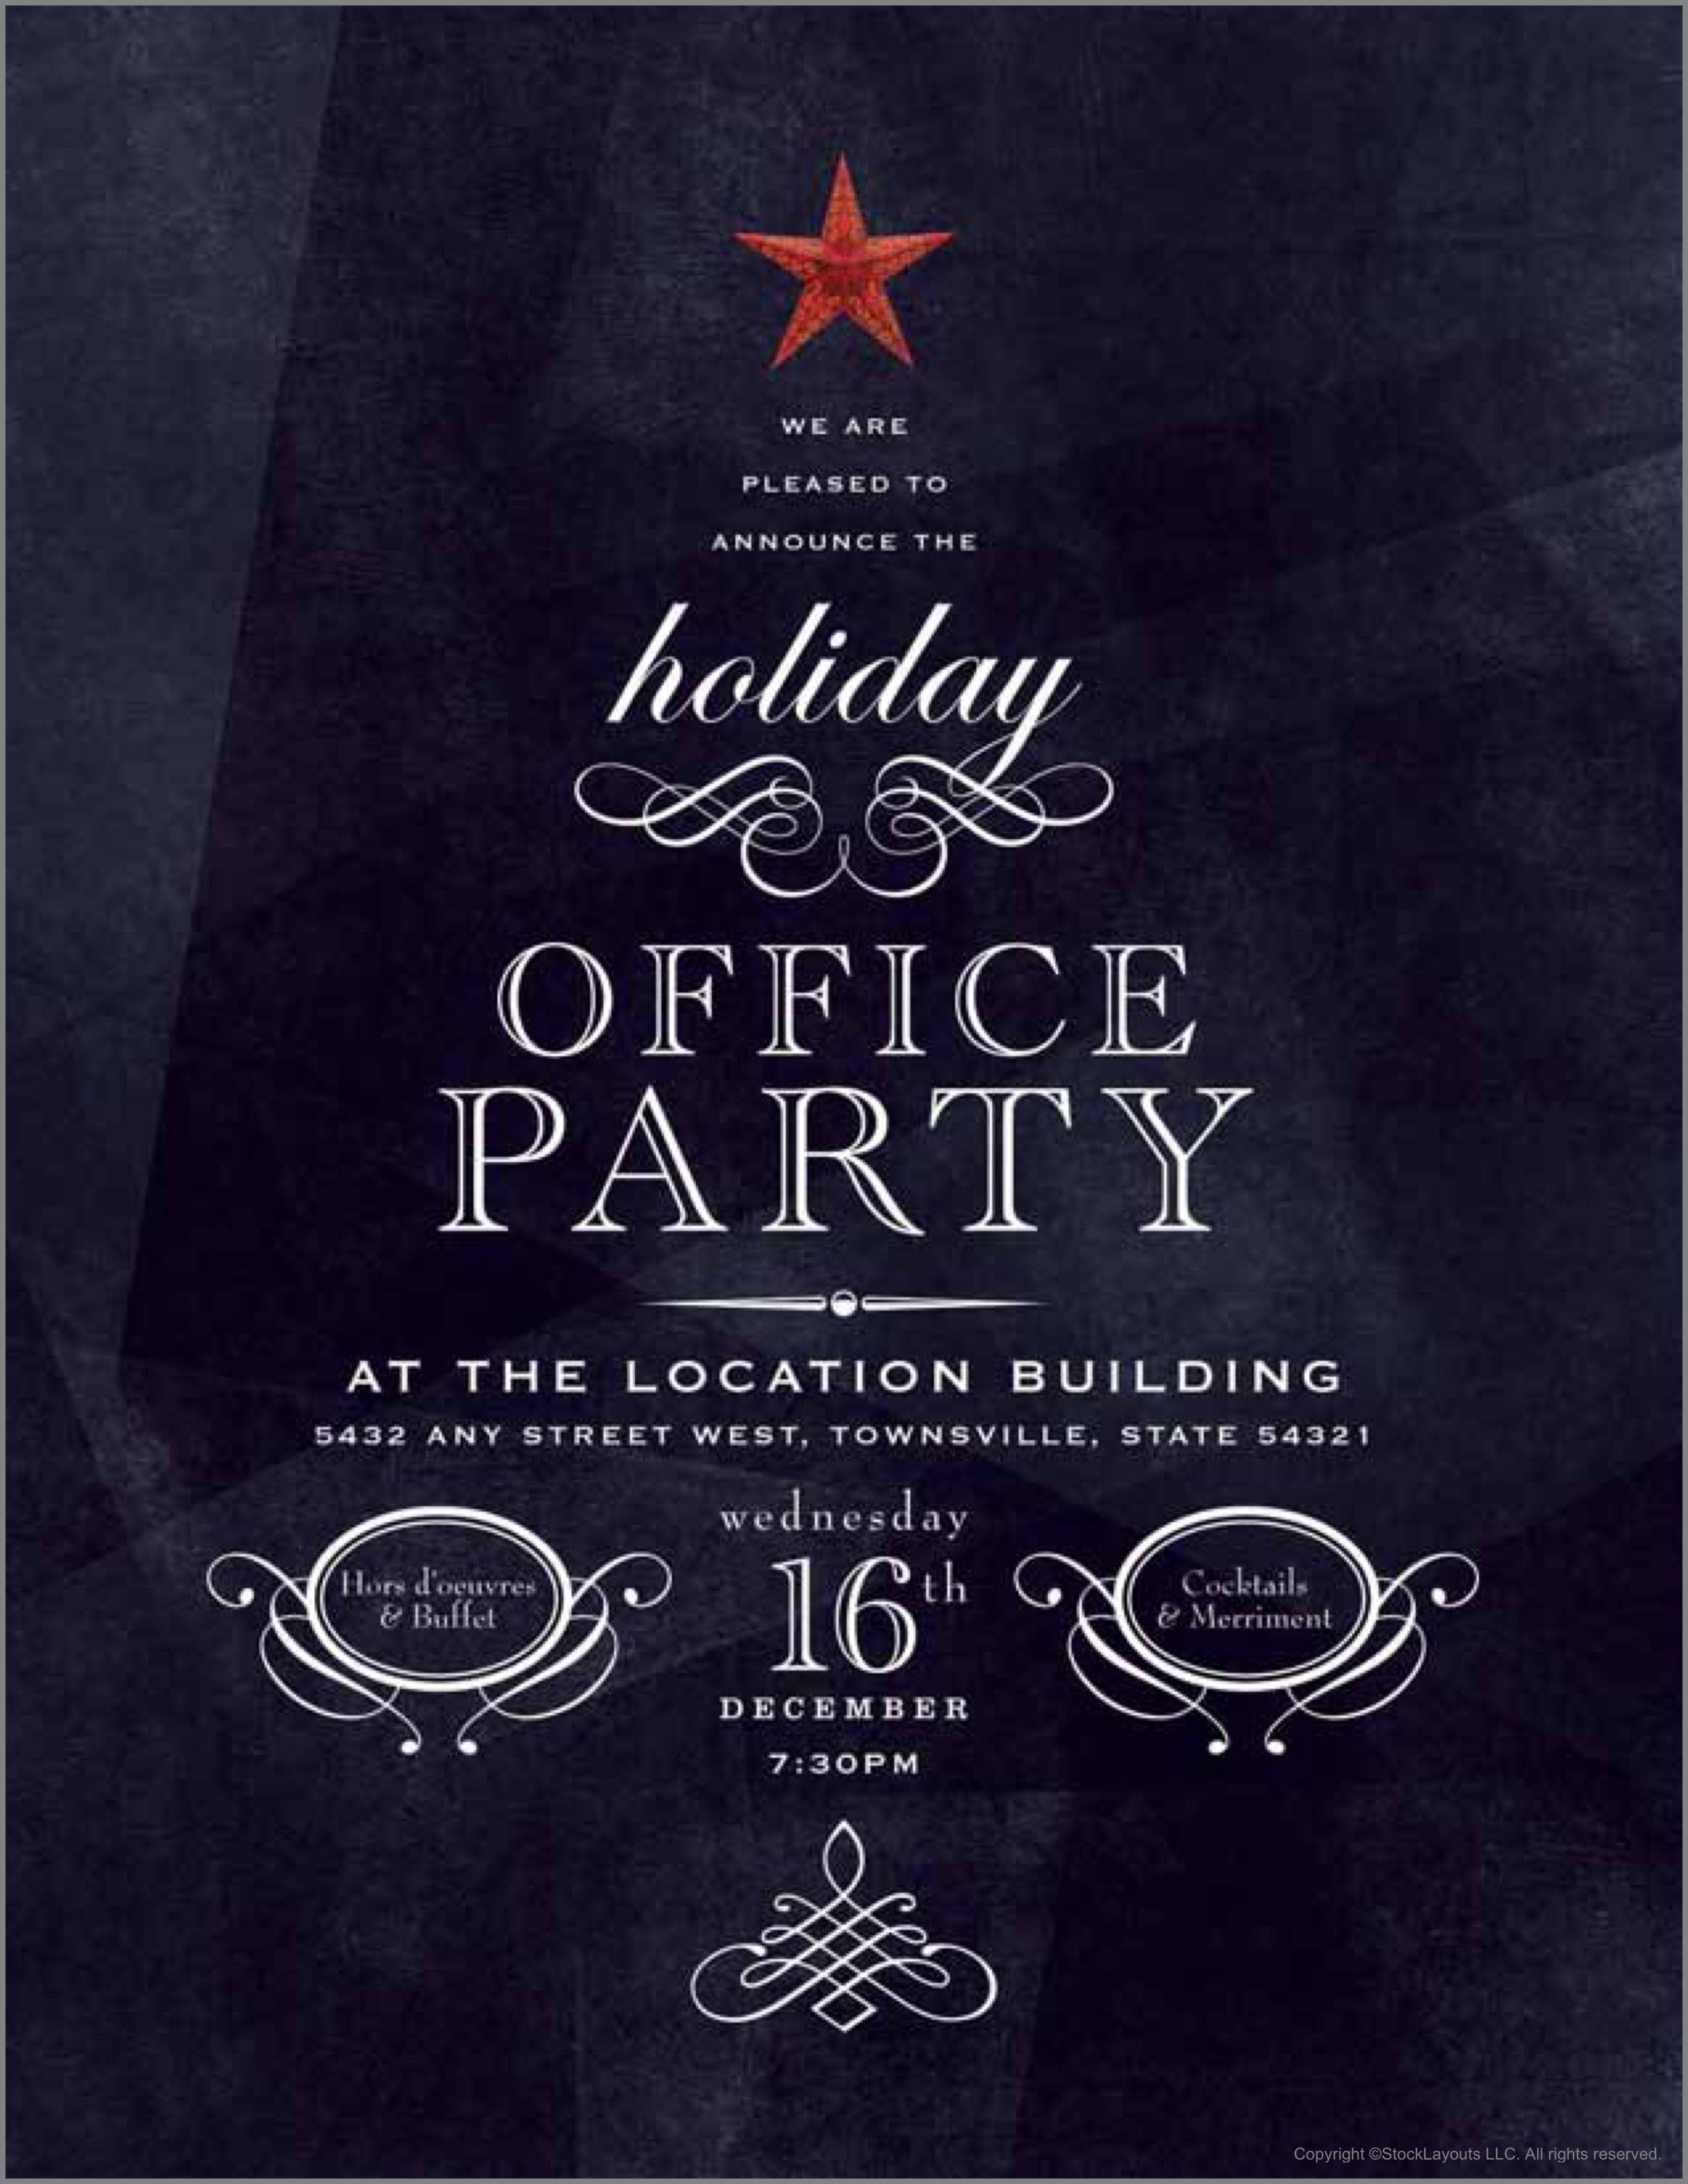 Office Christmas Party Invitation Design Template By Stocklayouts Holiday Party Flyer Christmas Party Invitation Template Office Christmas Party Invitation